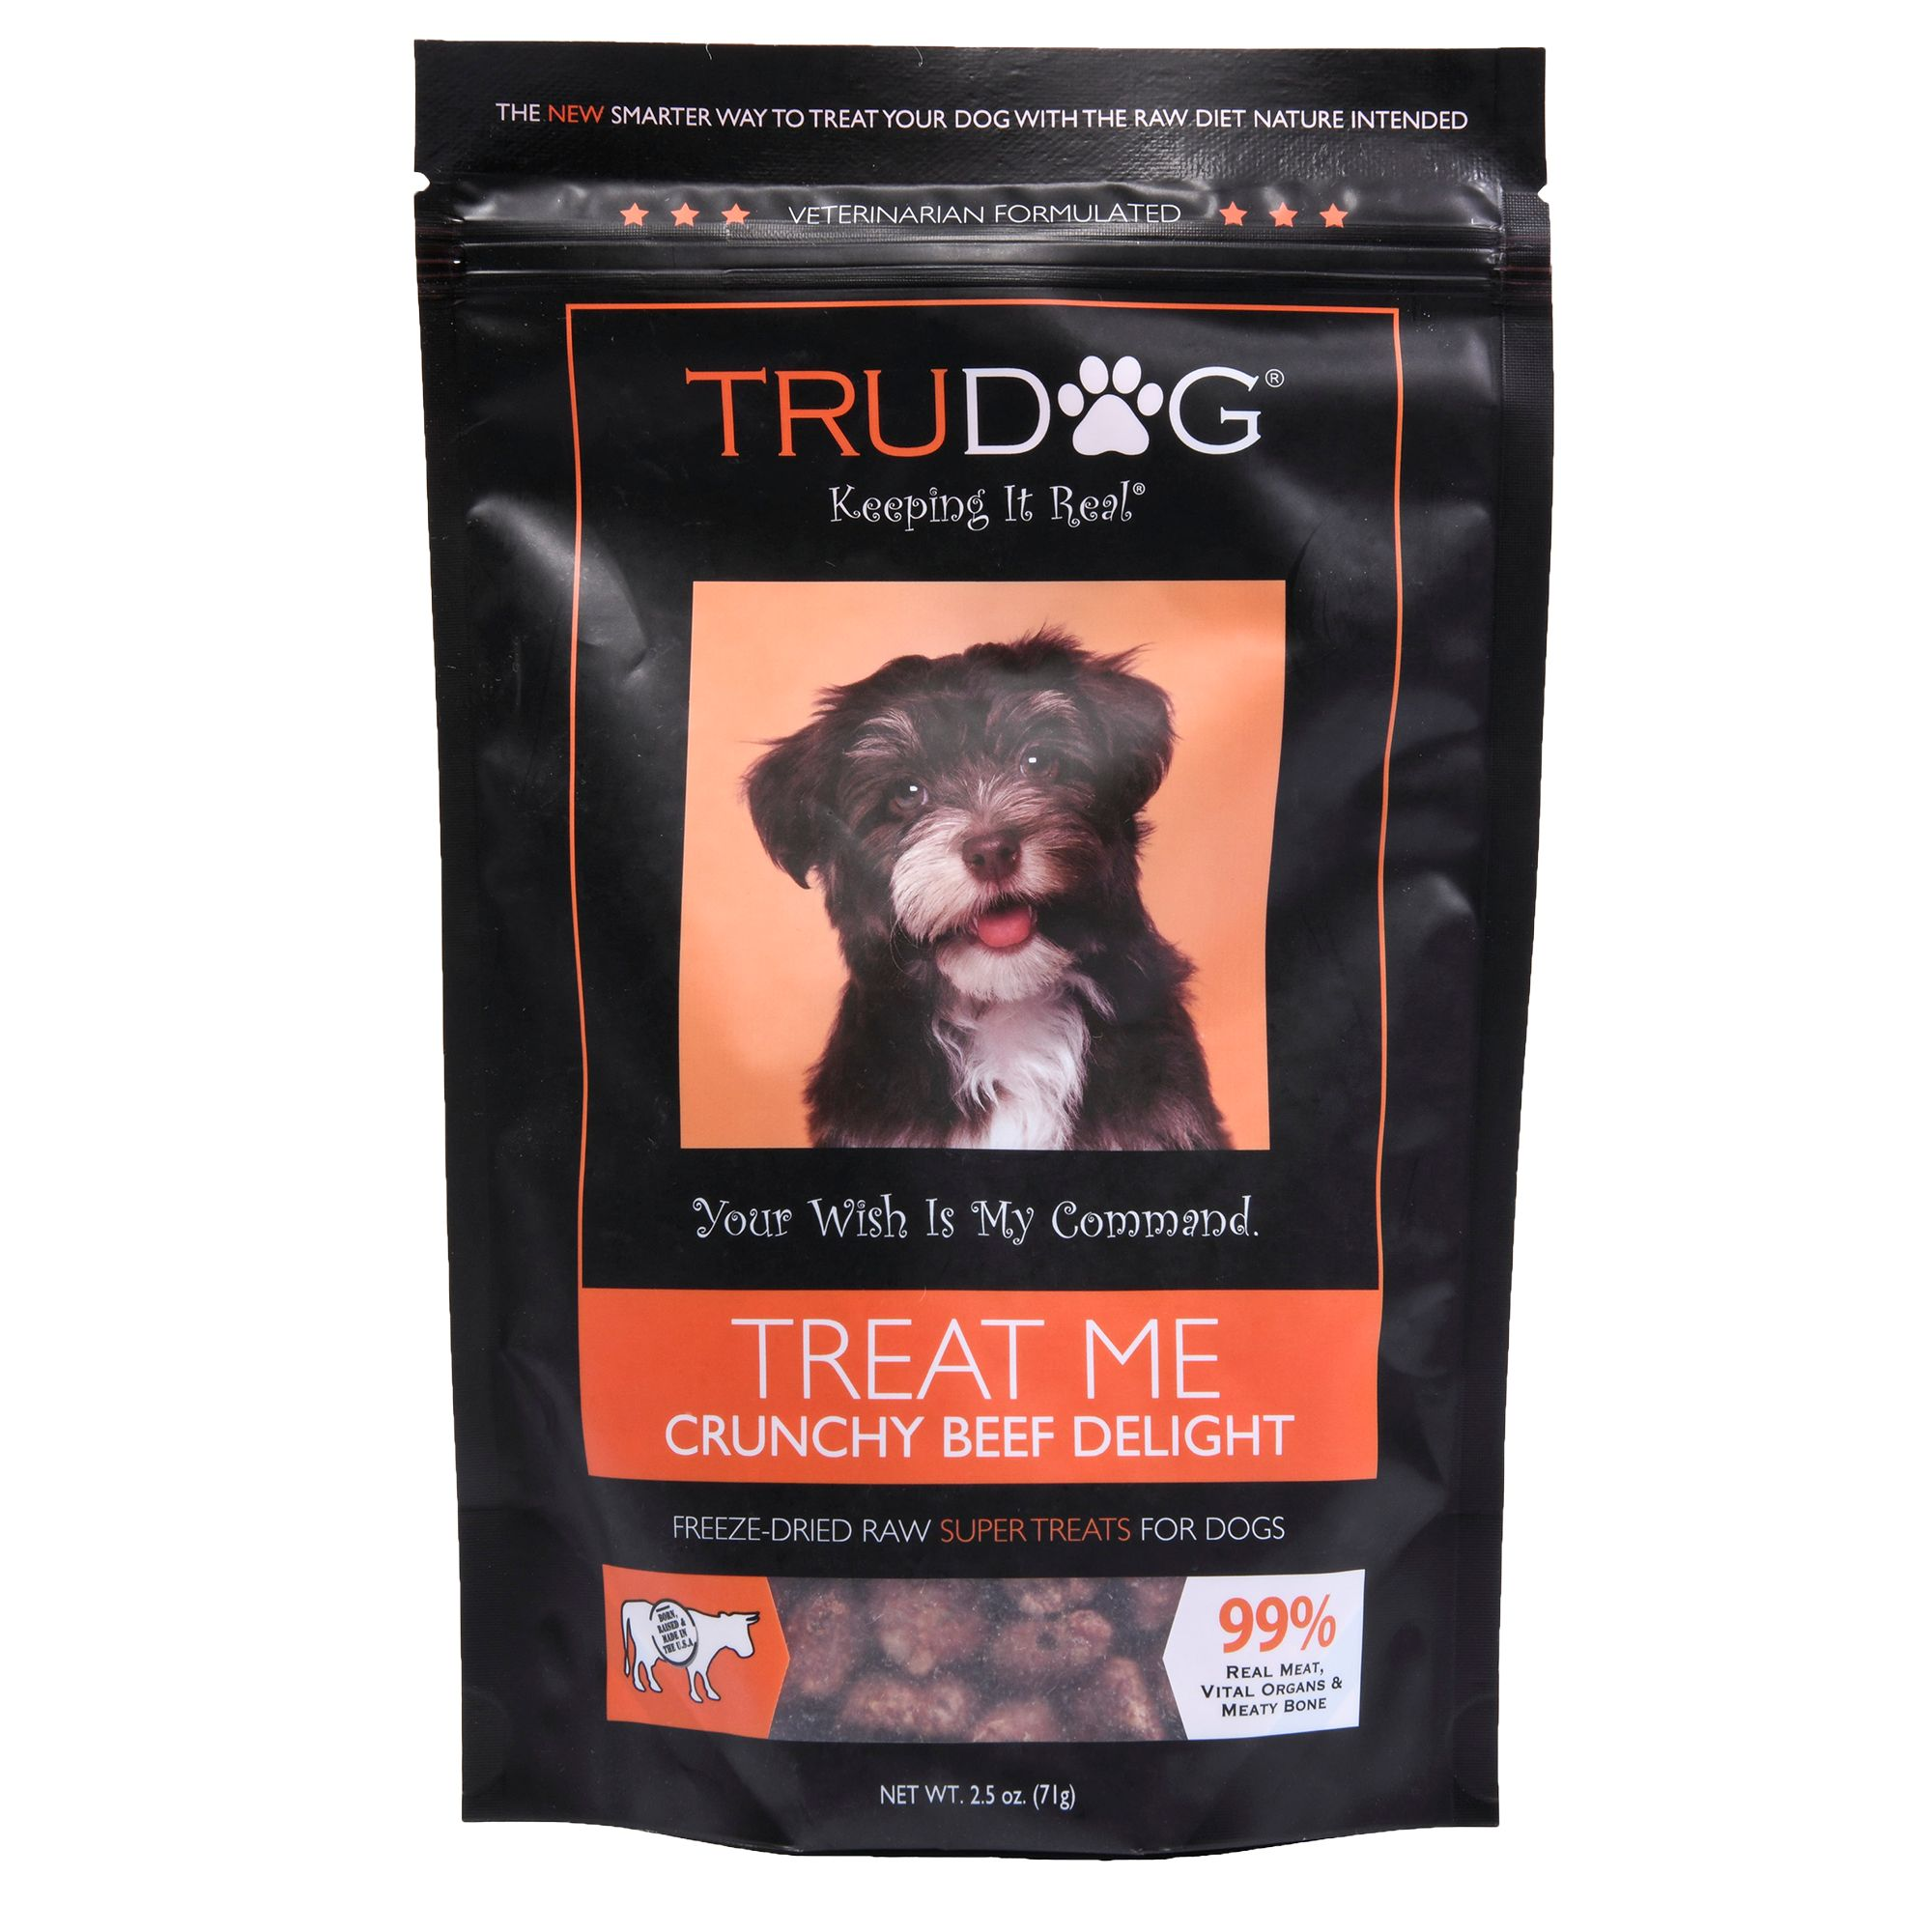 Trudog Treat Me Dog Treat Freeze Dried Raw Natural Crunchy Beef Delight Size 2.5 Oz